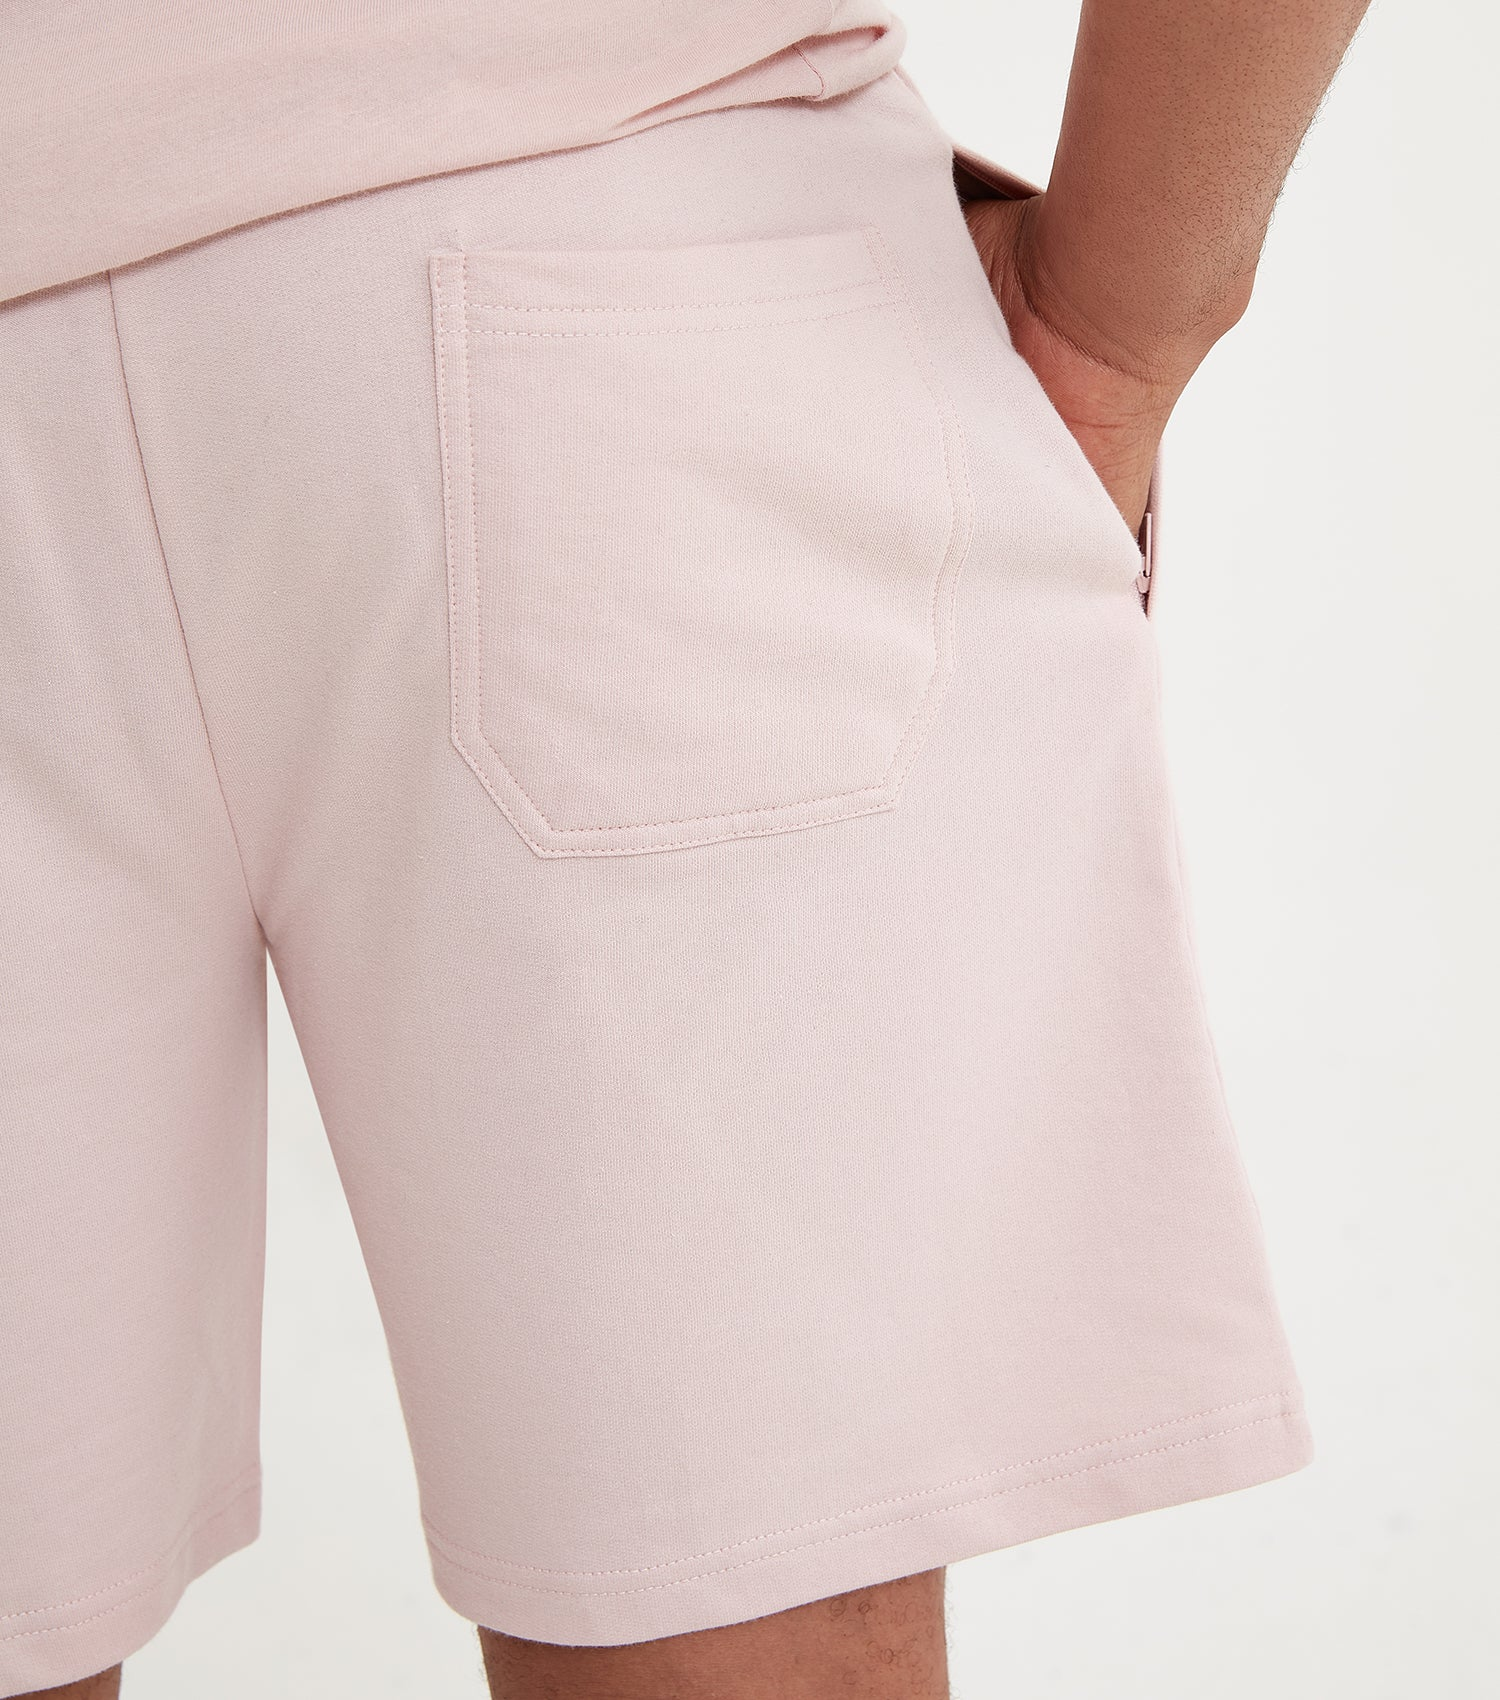 NICCE Mens Steel Shorts | Dirty Pink, Shorts